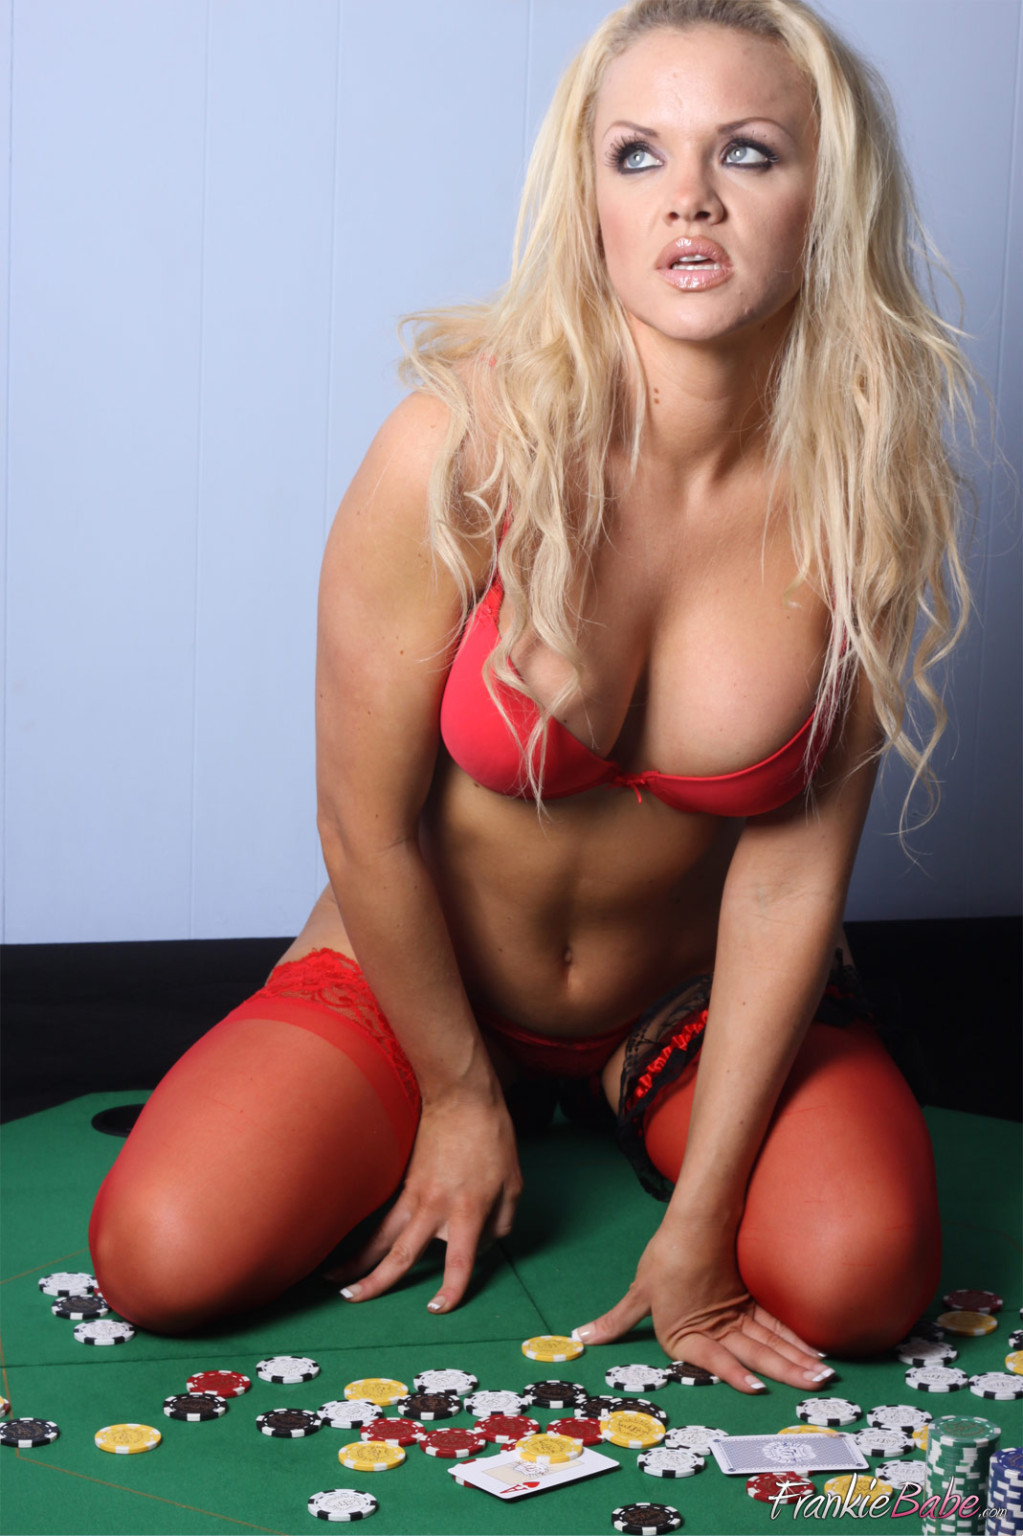 Who fancies a game of get undressed poker dirty sticky golden-haired frankiebabe is ready to peter out